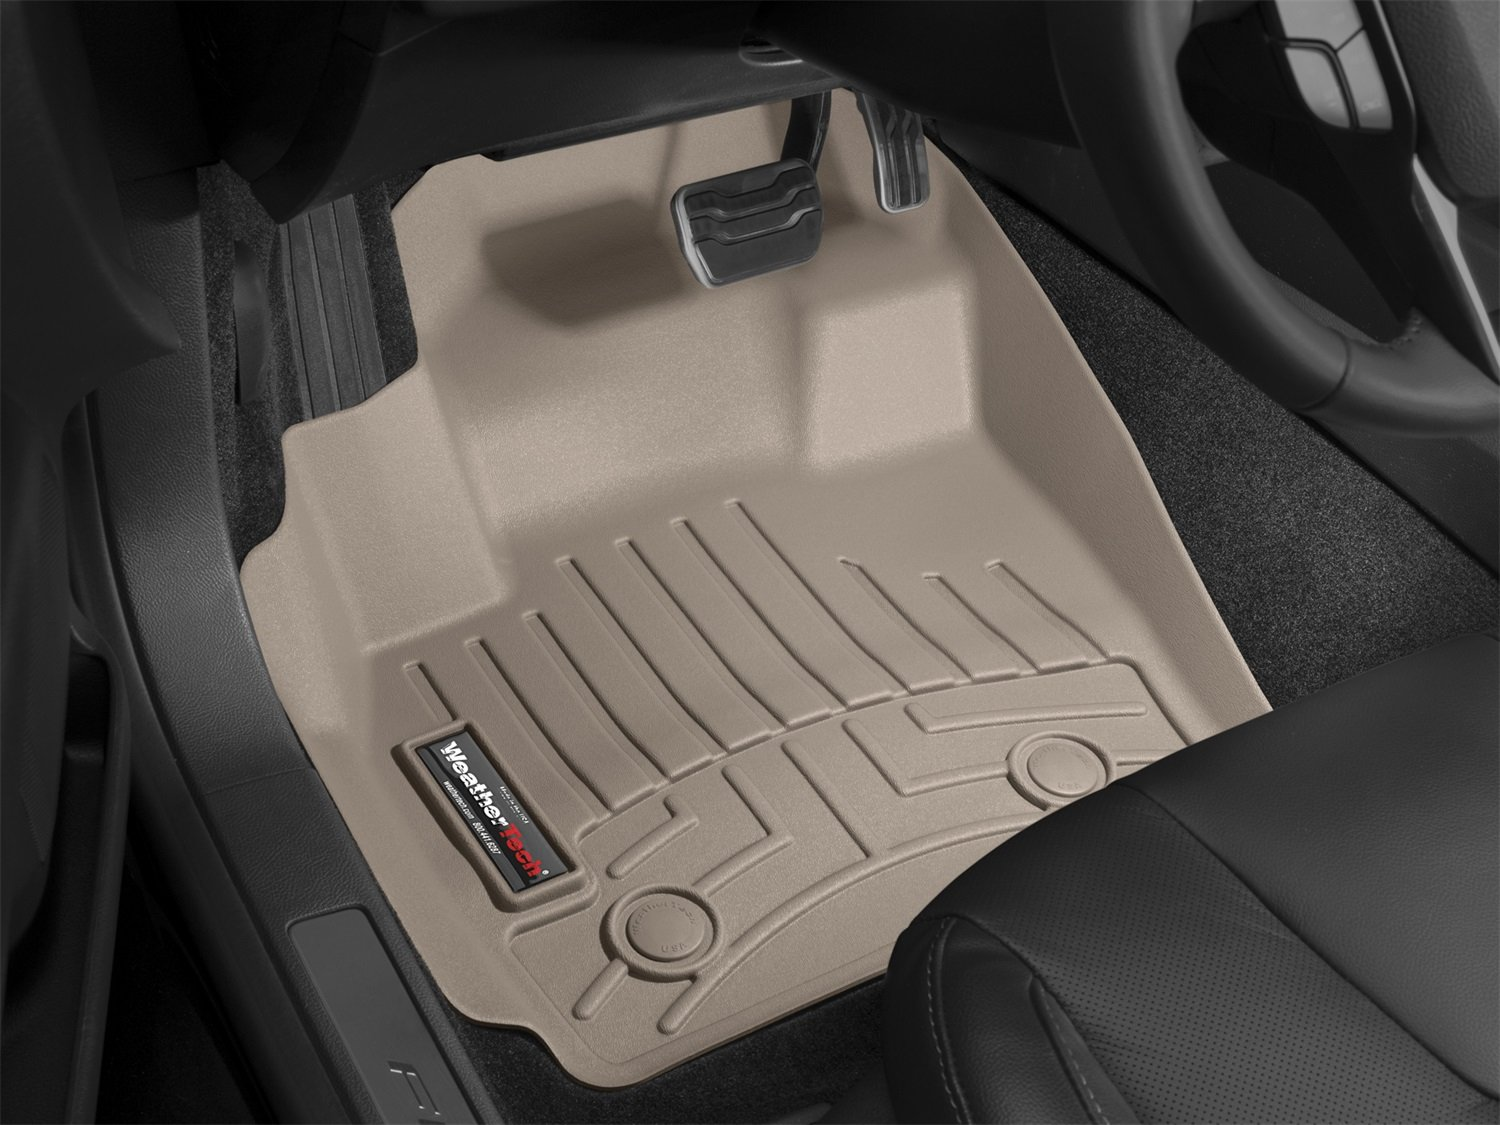 WeatherTech Custom Fit Front FloorLiner for Honda Fit, Tan 451811